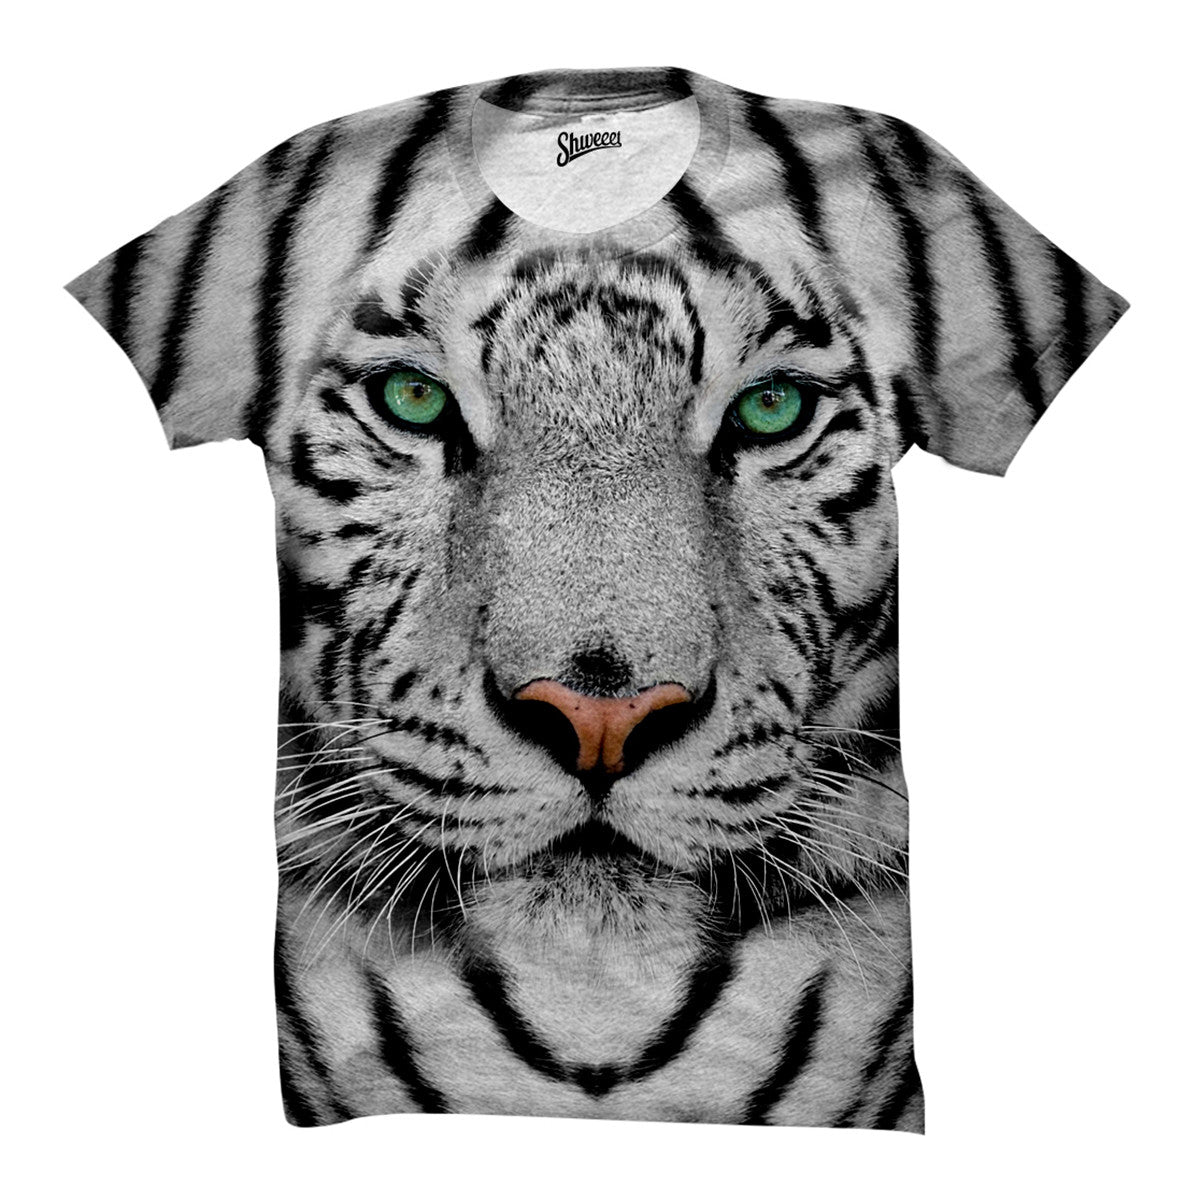 White Tiger T shirt - Shweeet